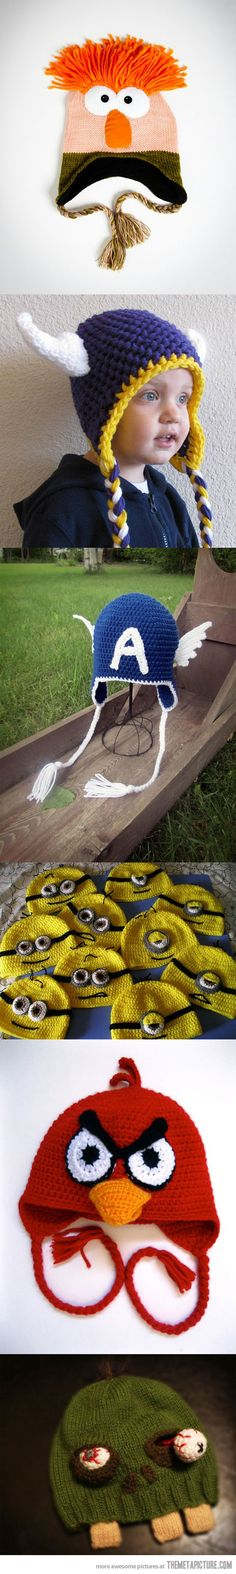 Awesome Crocheted Hats